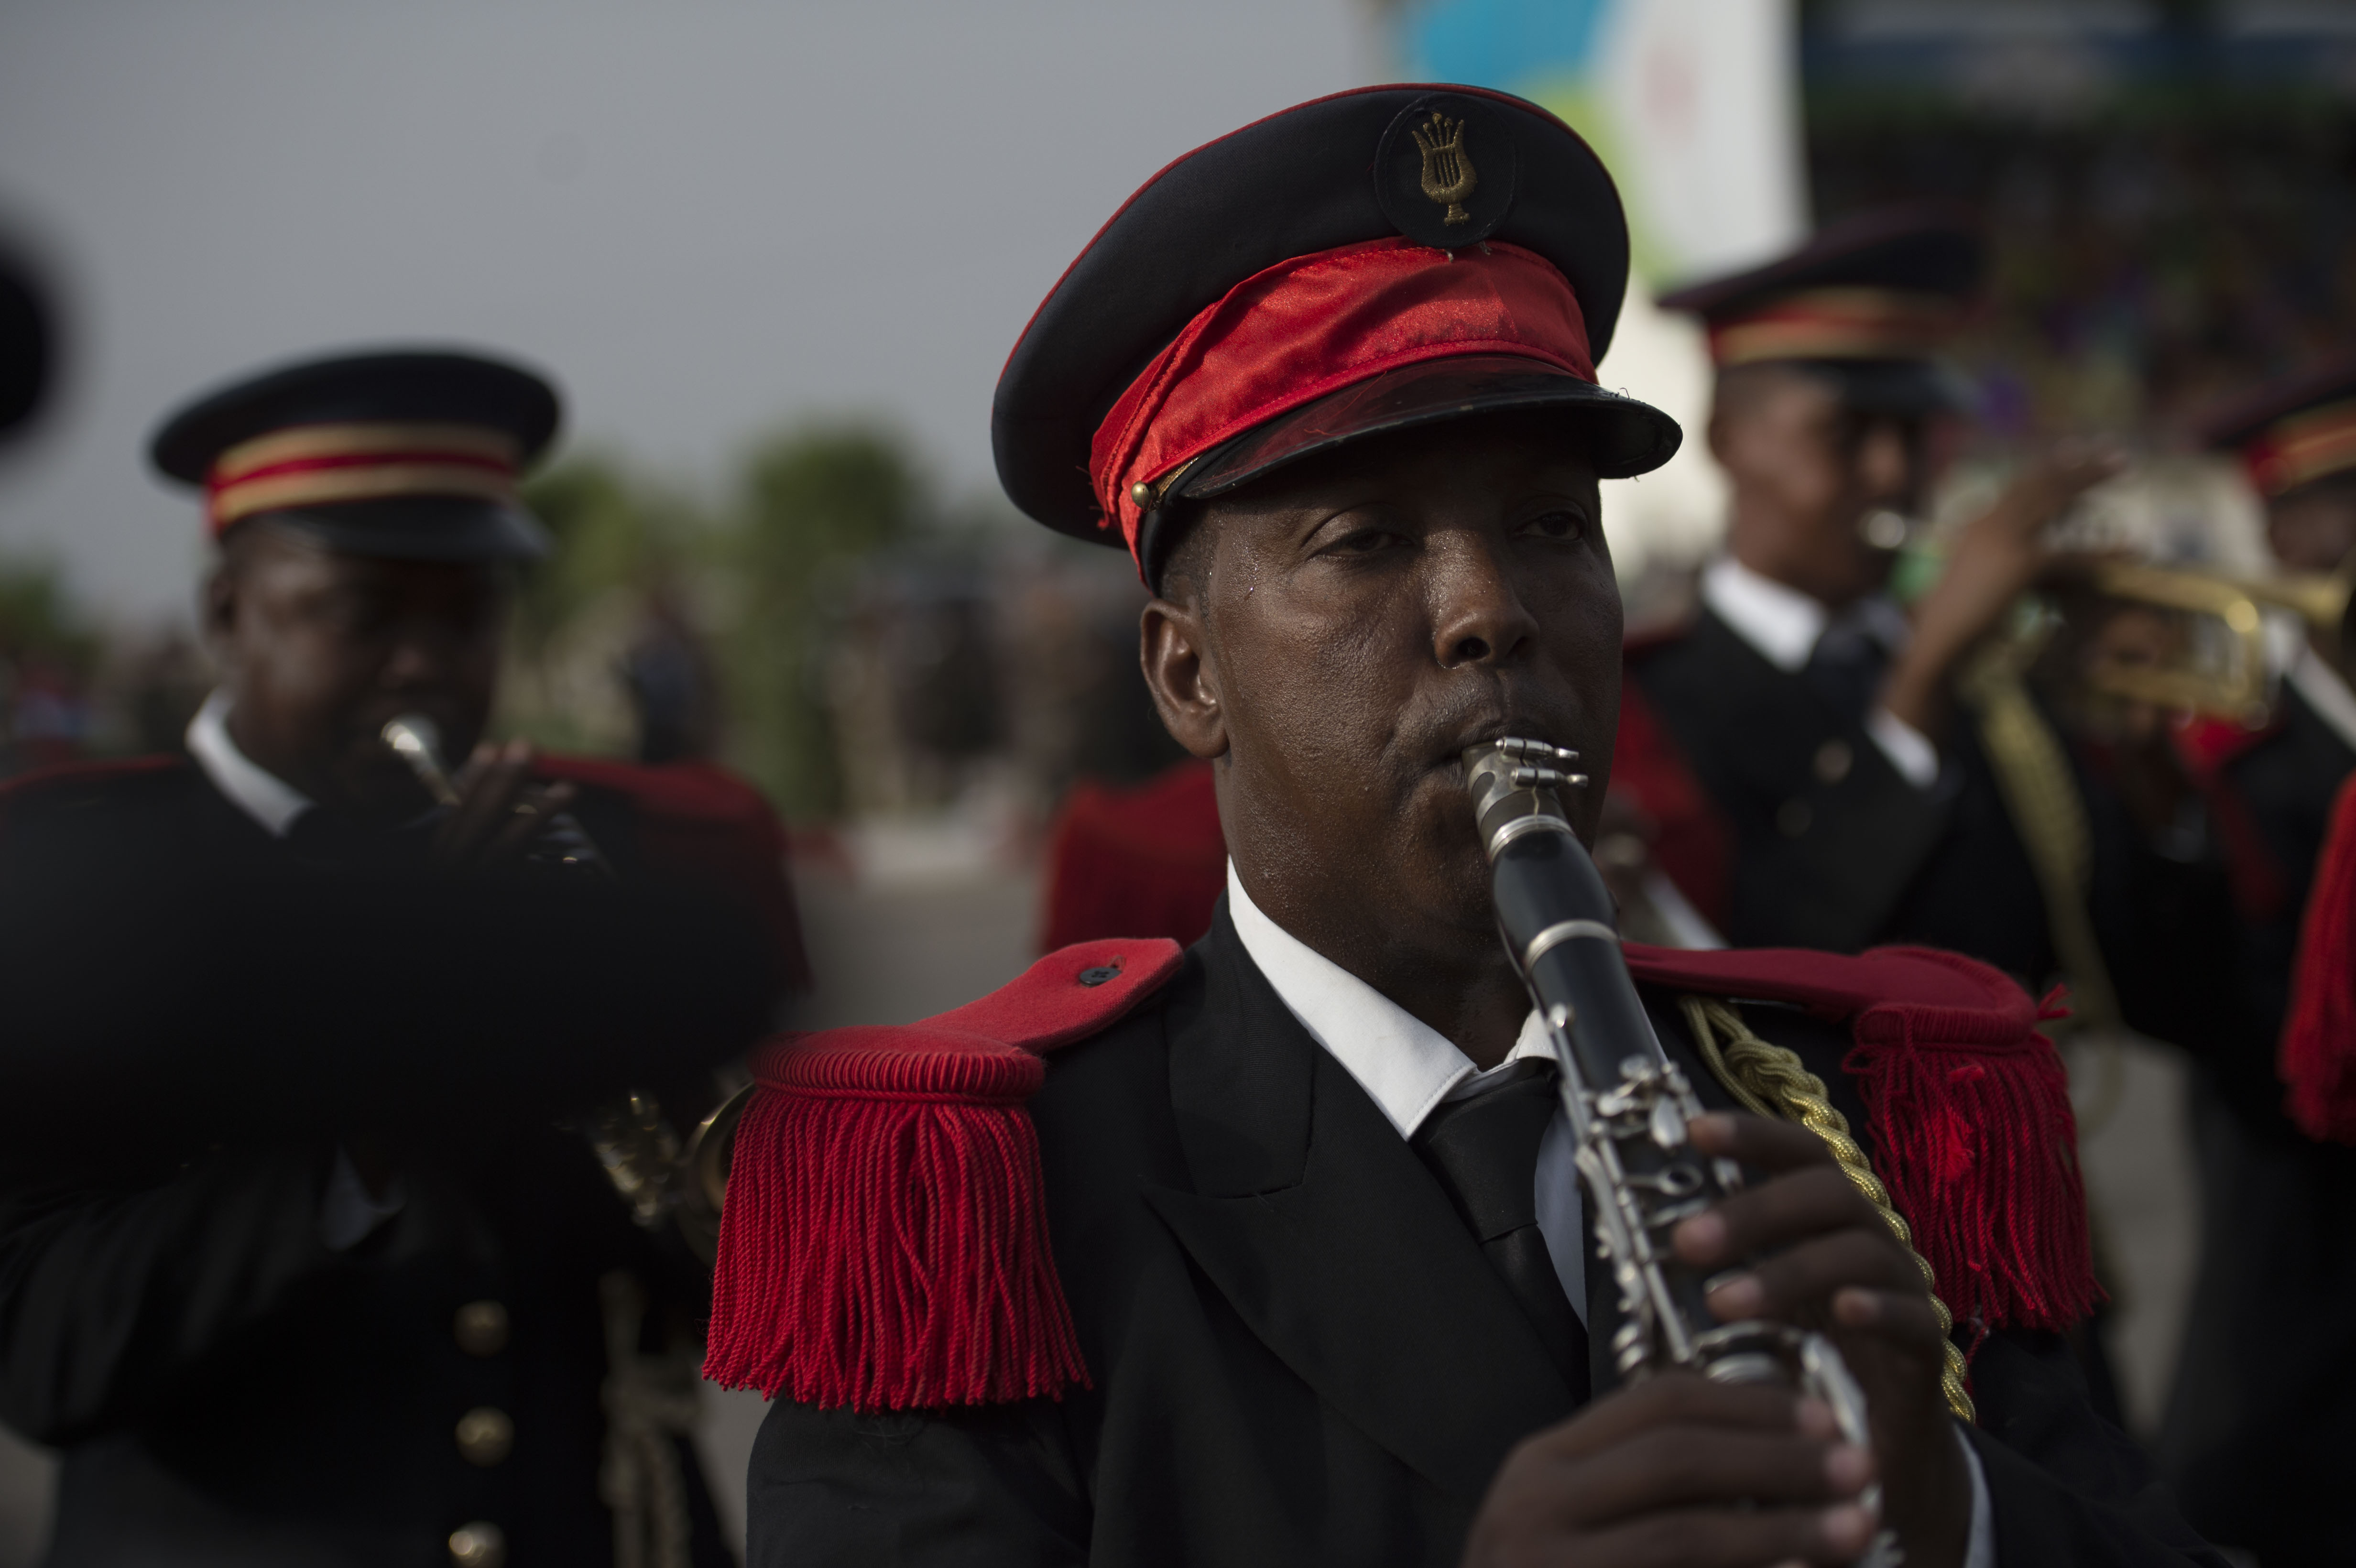 A Djiboutian band member plays a clarinet during the Djibouti Independence Day parade June 27, 2016, at Djibouti. Service members from all Djiboutian military branches participated in the parade along with law enforcement. (U.S. Air Force photo by Staff Sgt. Eric Summers Jr.)